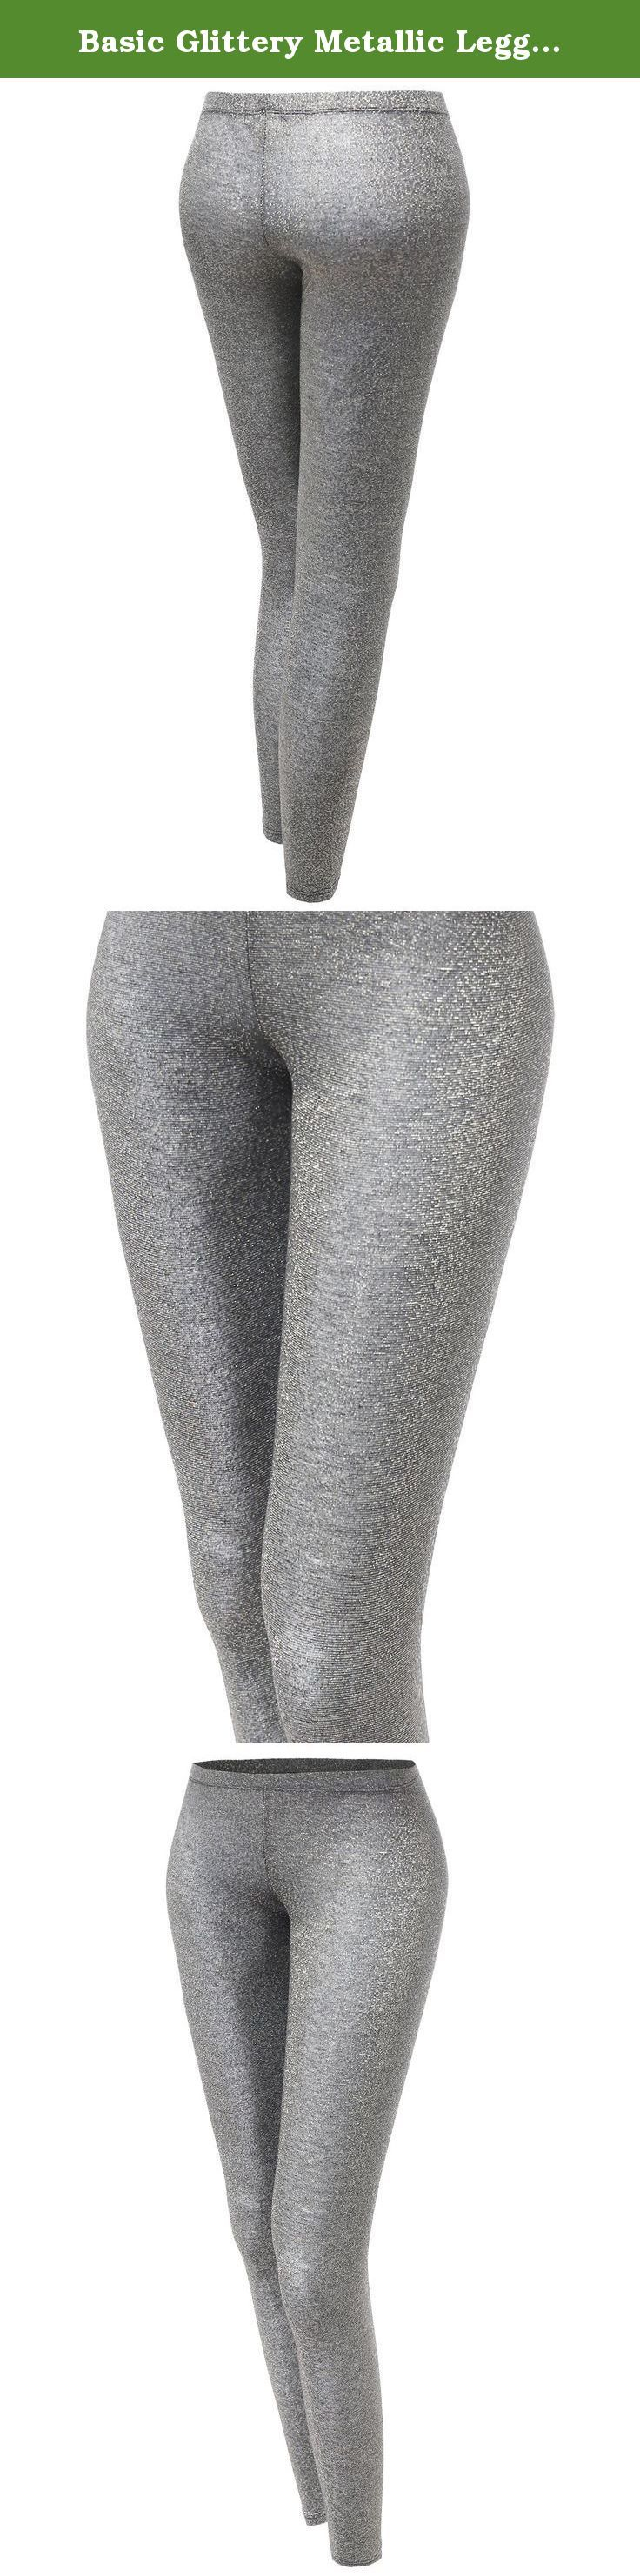 Basic Glittery Metallic Leggings Silver Size S. Awesome21 is a company which carries professionally in womenswear. We specialize in basic to trendy items which will interest all the ladies and women looking for casual or stylish and unique clothes with quality fabric. If metallic shiny leggings are too bright for you and you want to get legging that has a little shine into it, this is a perfect match. When we meet people who think metallic shiny leggings are too much, we recommend this…